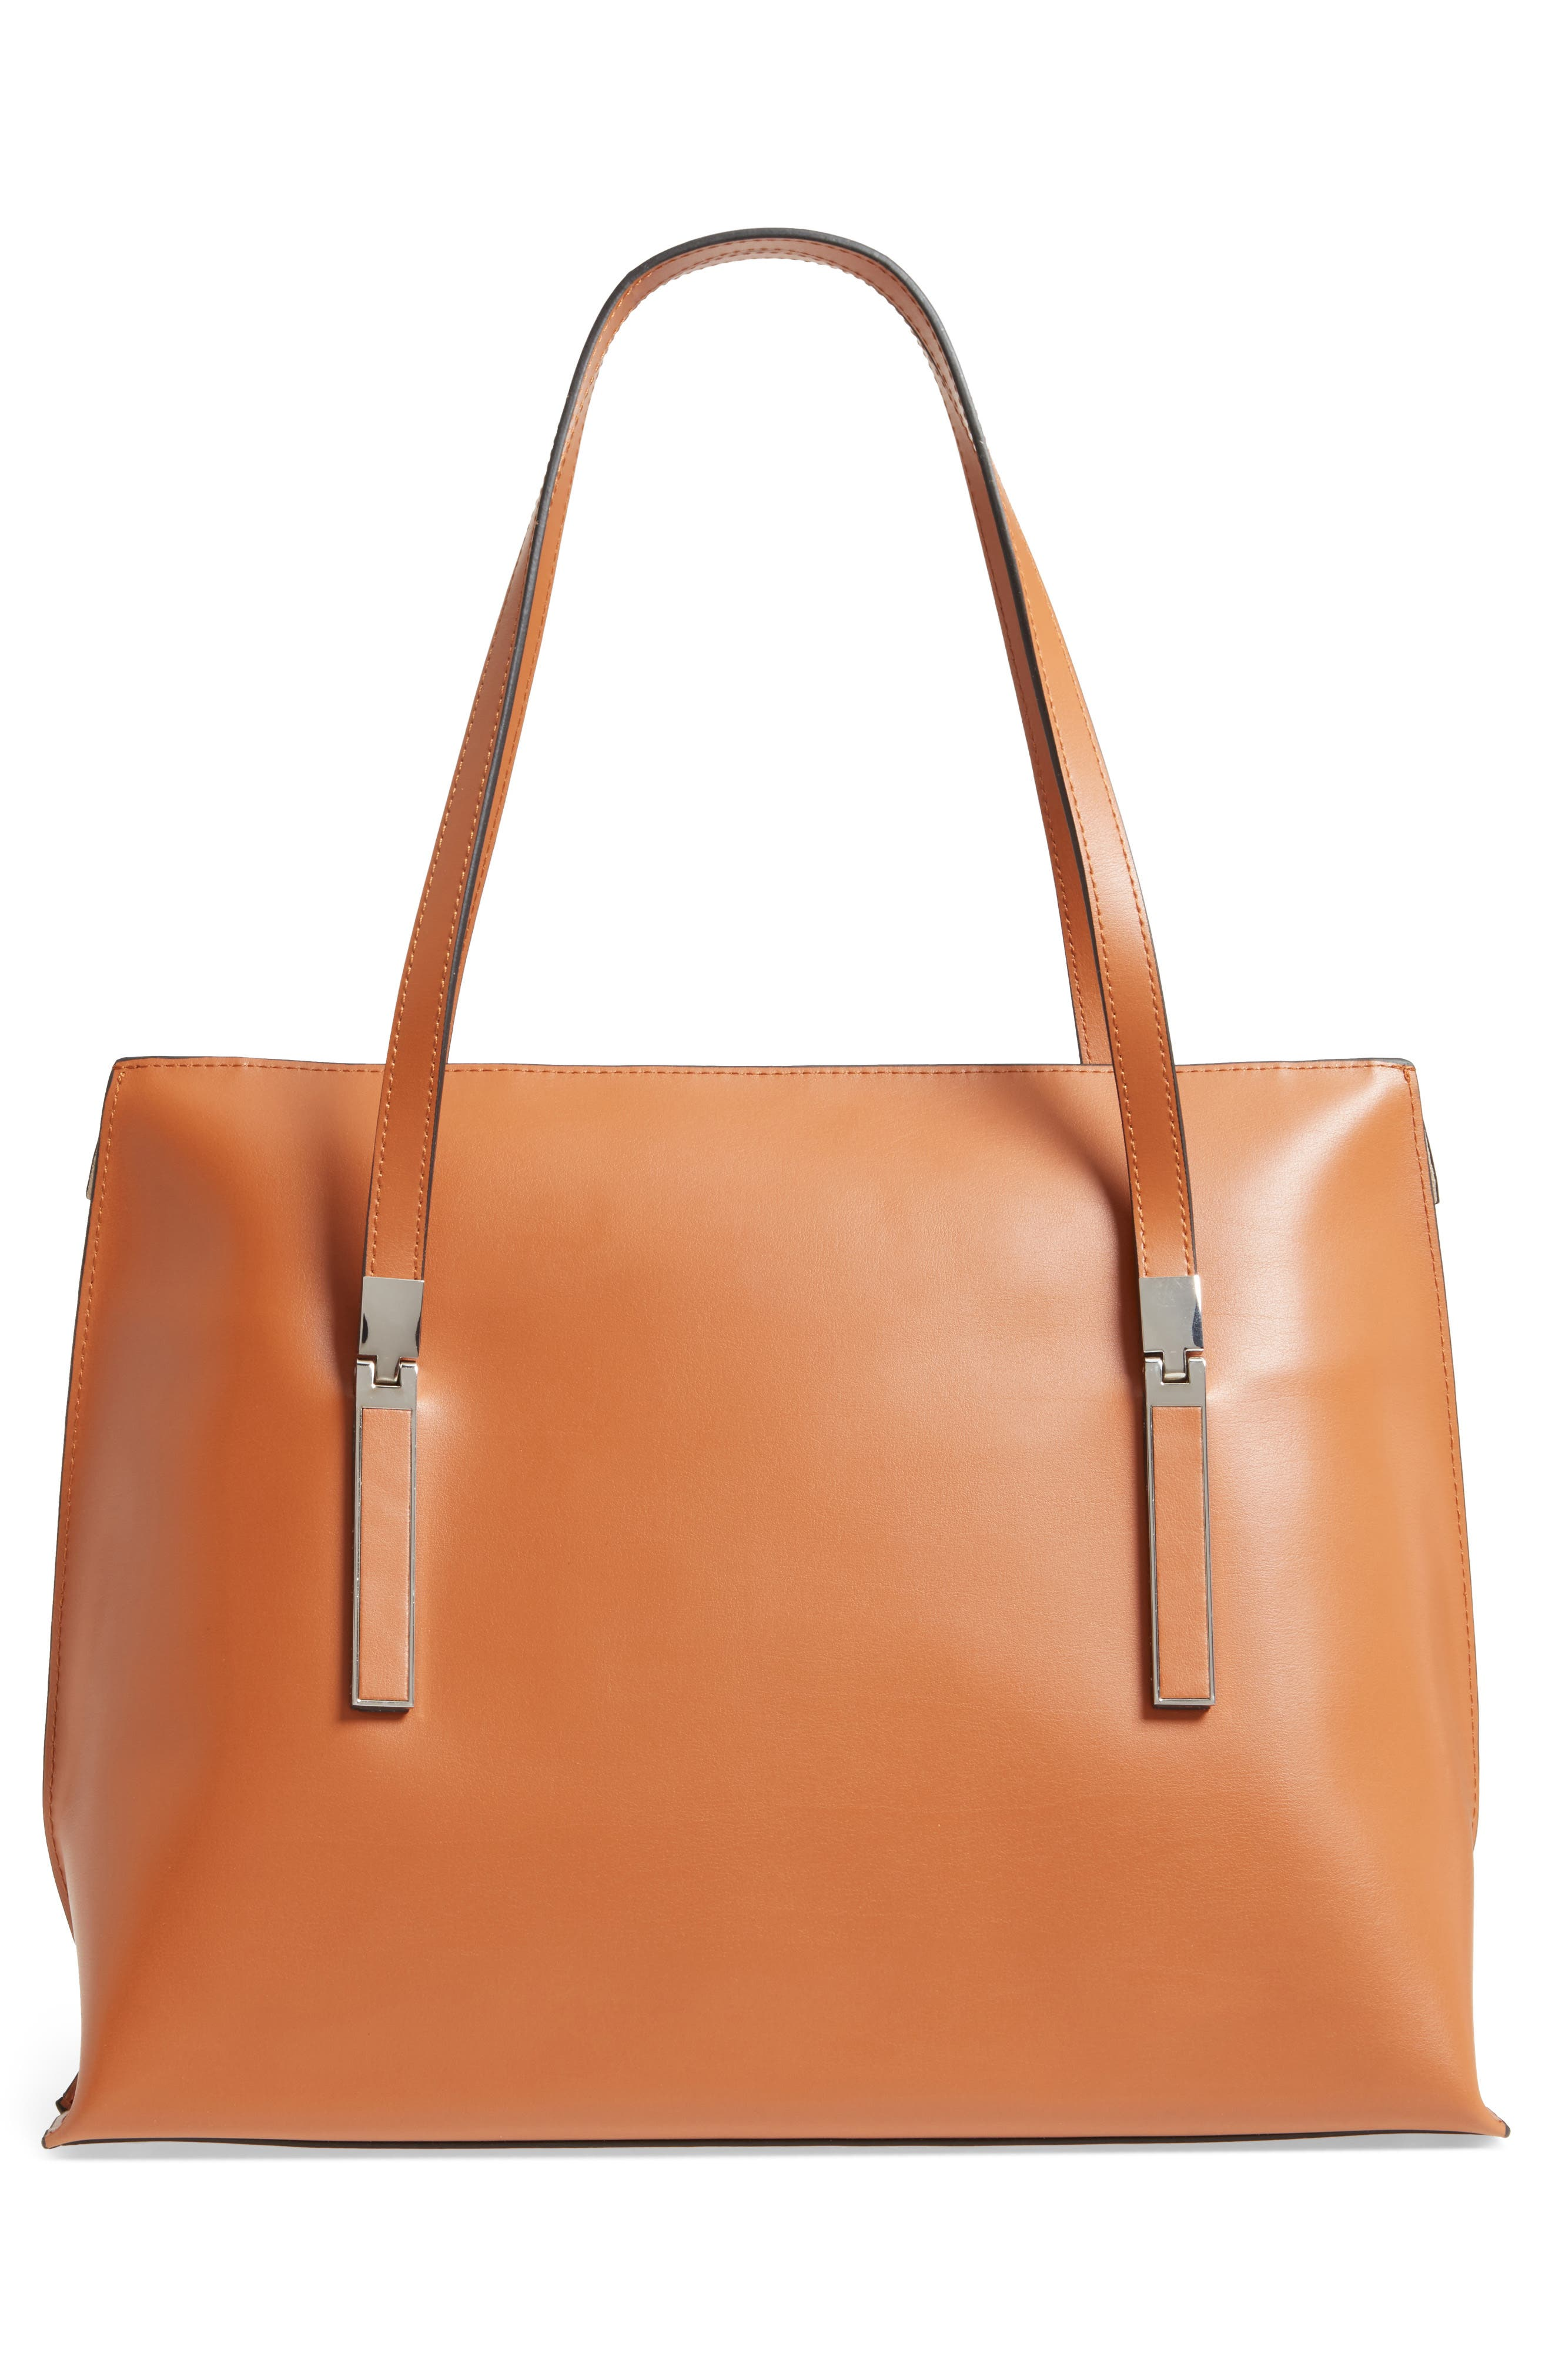 LODIS Silicon Valley - Lorrain RFID Leather Satchel,                             Alternate thumbnail 3, color,                             Toffee/ Taupe